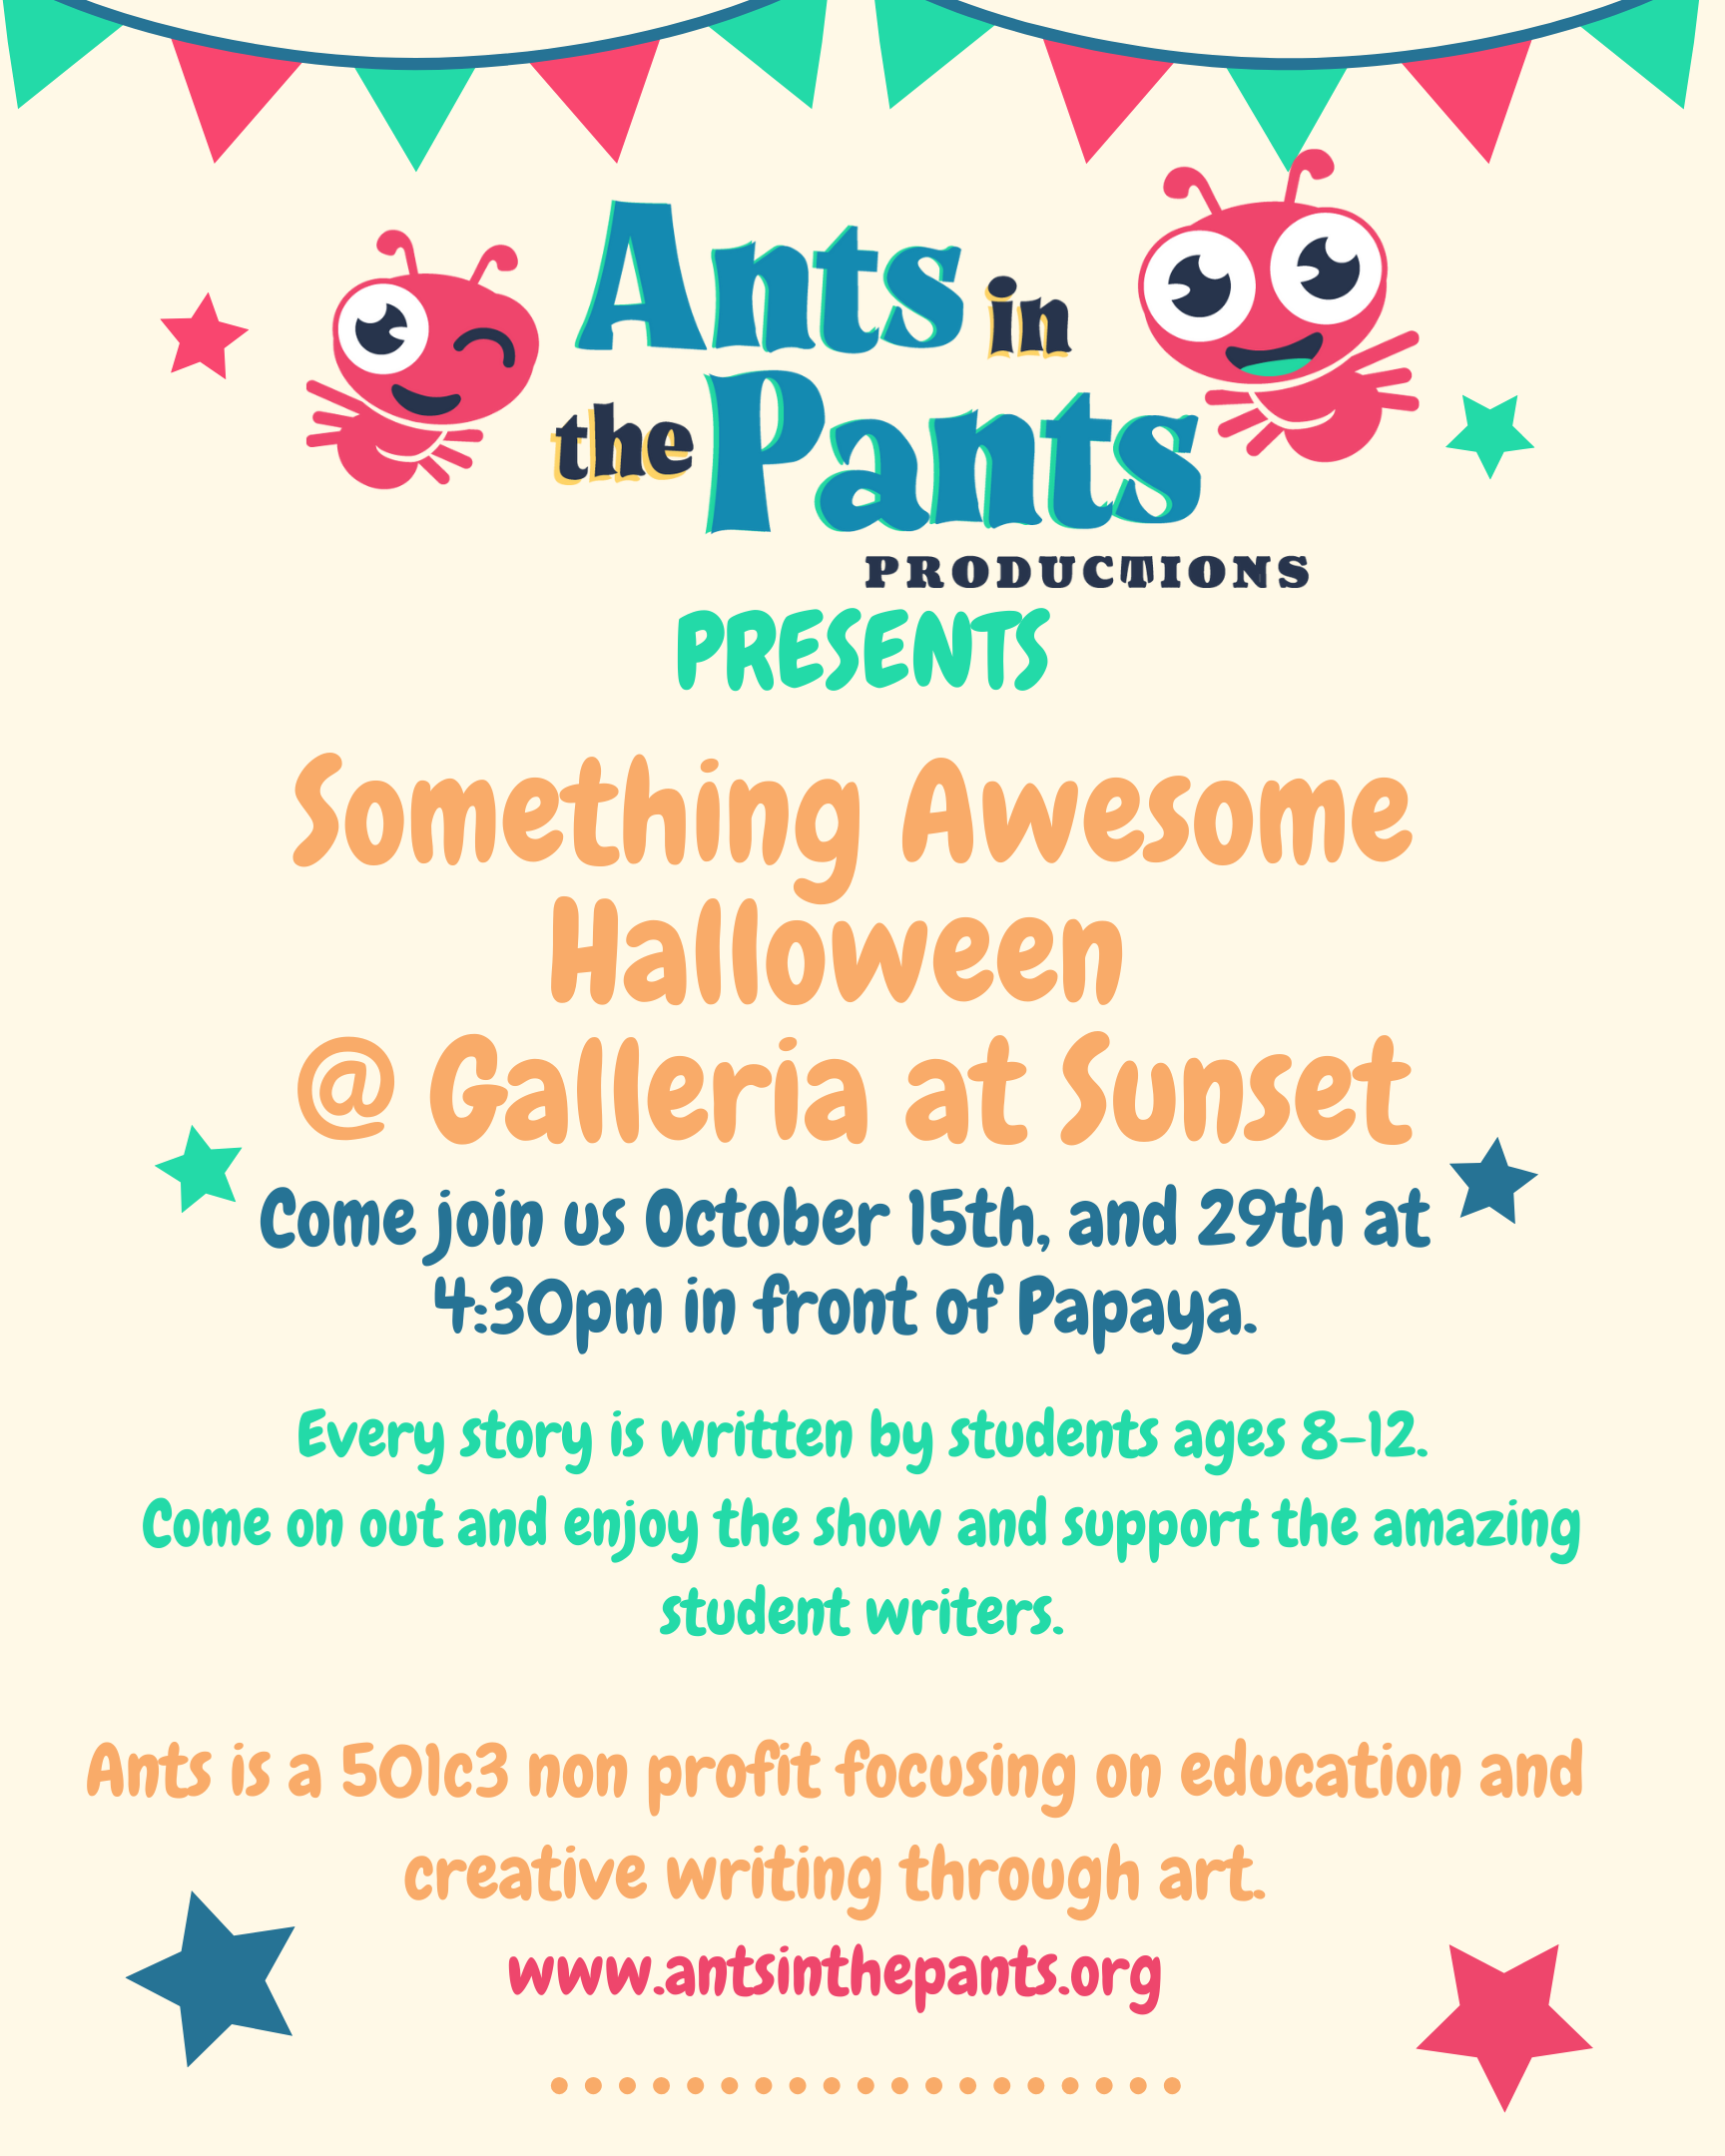 Ants in the Pants Production